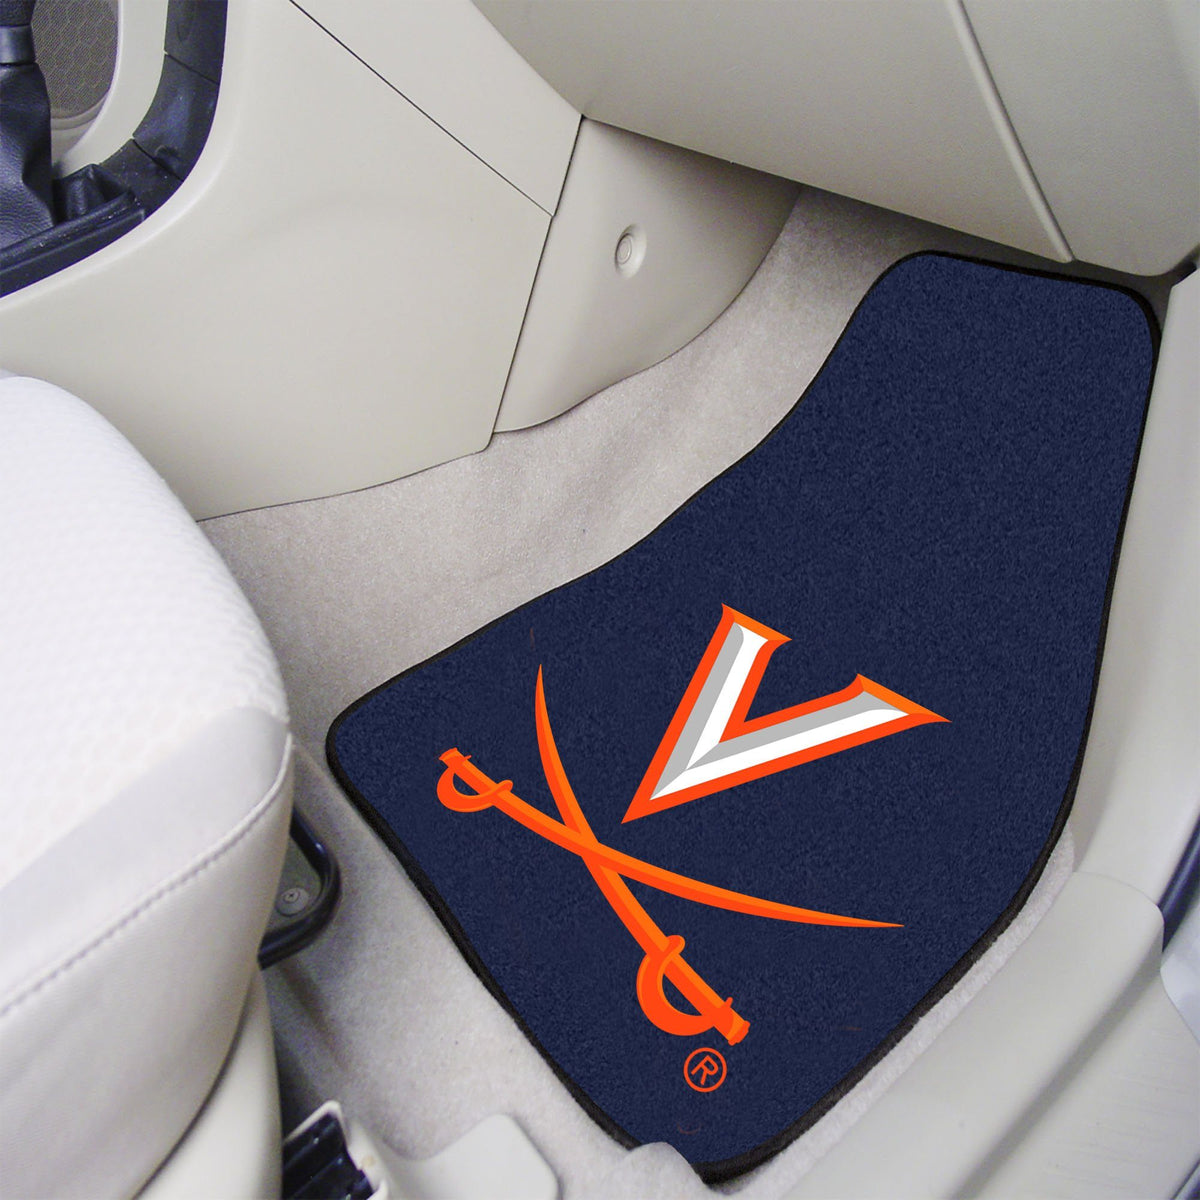 Collegiate - Carpet Car Mat, 2-Piece Set: T - Z Collegiate Car Mat, Front Car Mats, 2-pc Carpet Car Mat Set, Collegiate, Auto Fan Mats Virginia